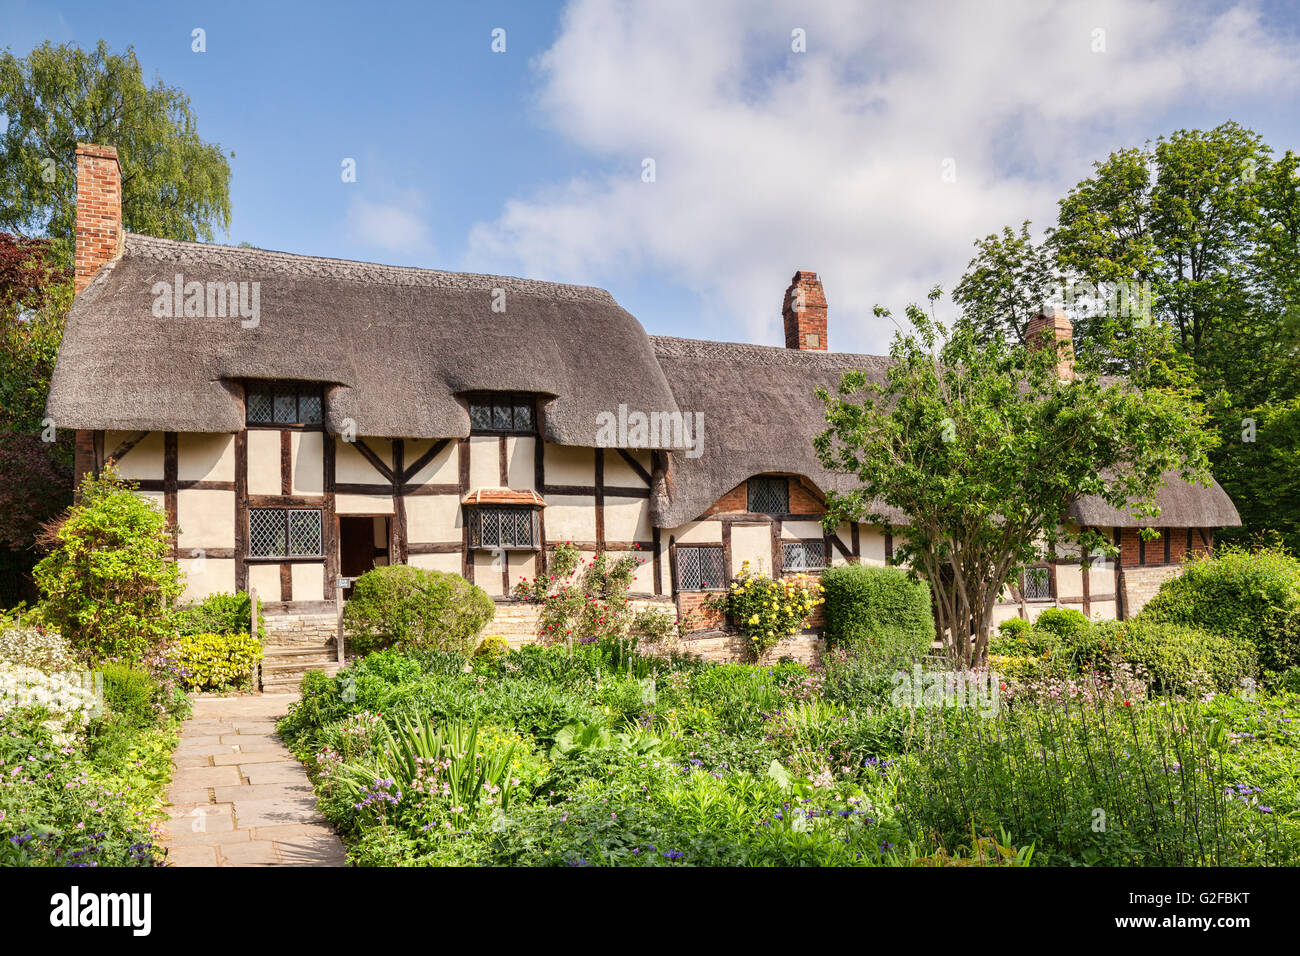 Anne Hathaway's Cottage and its cottage garden, Shottery, Stratford-upon-Avon, Warwickshire, England, UK - Stock Image